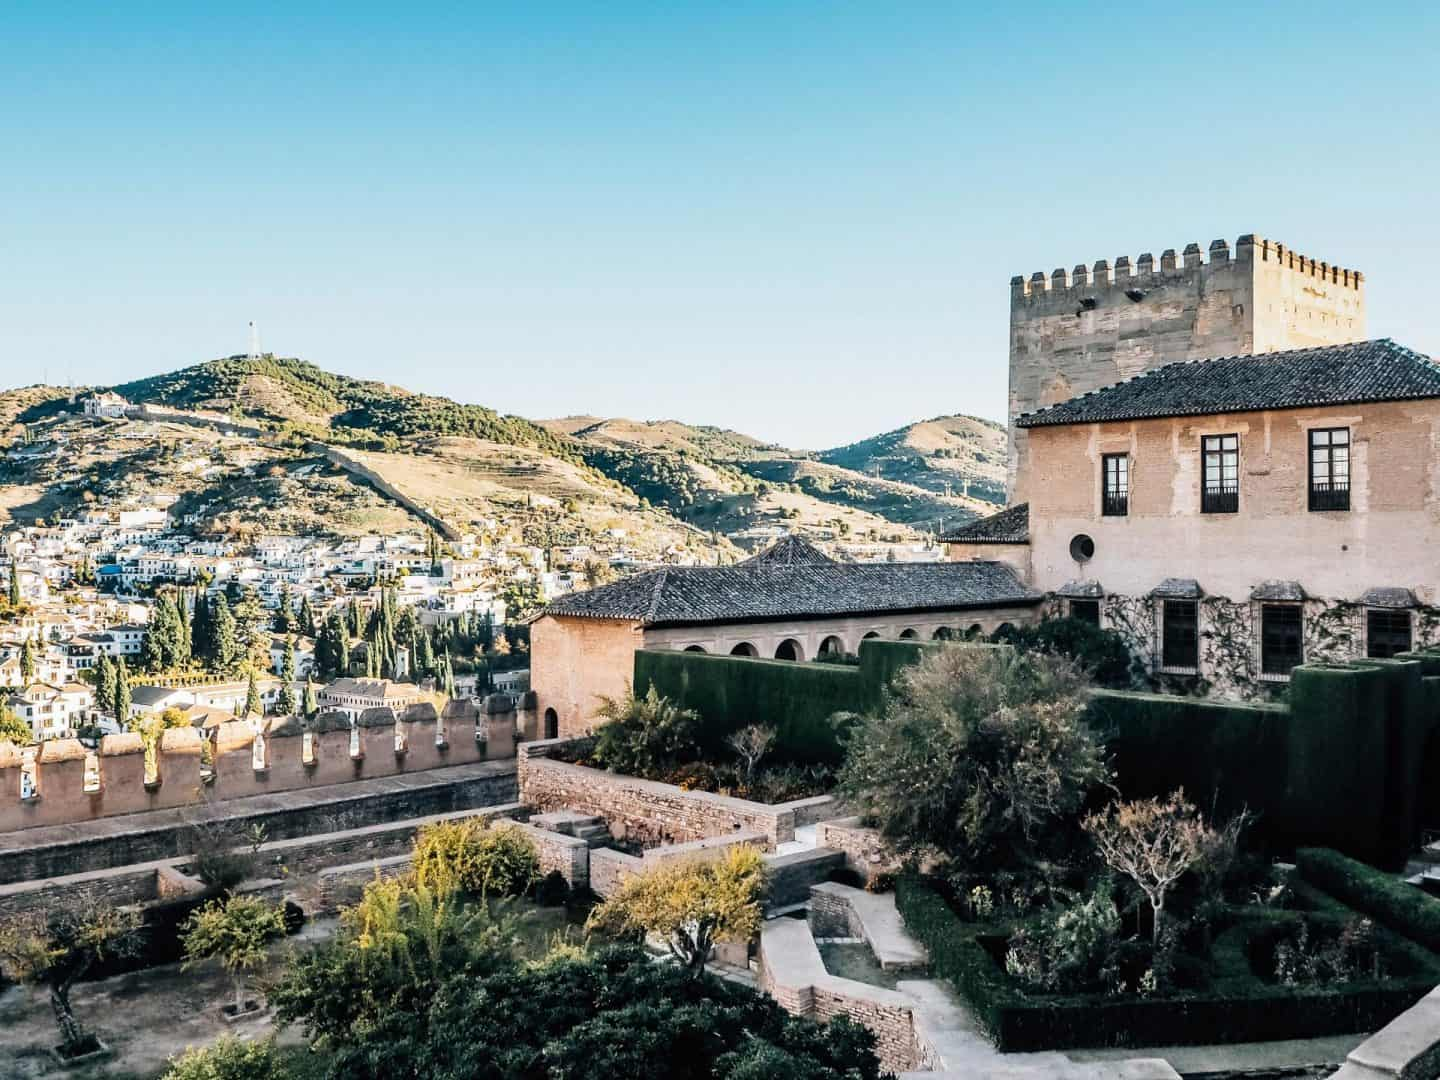 The incredible Alhambra: photos, facts and visitor guide